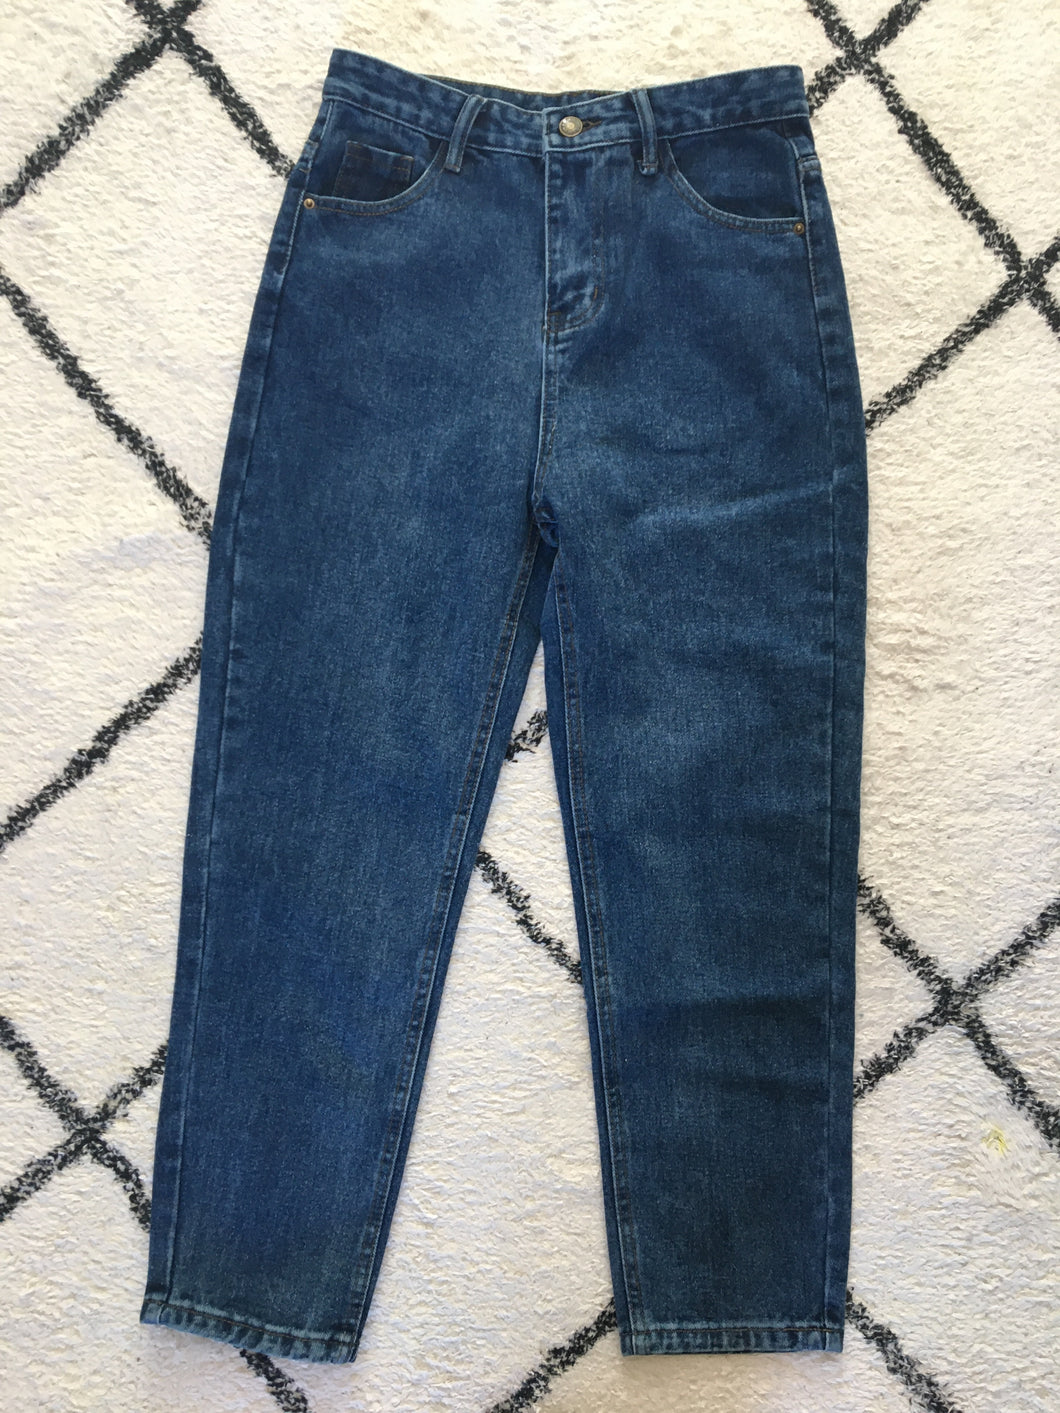 Fairly Made Denim Cotton High Waist Mom Jean